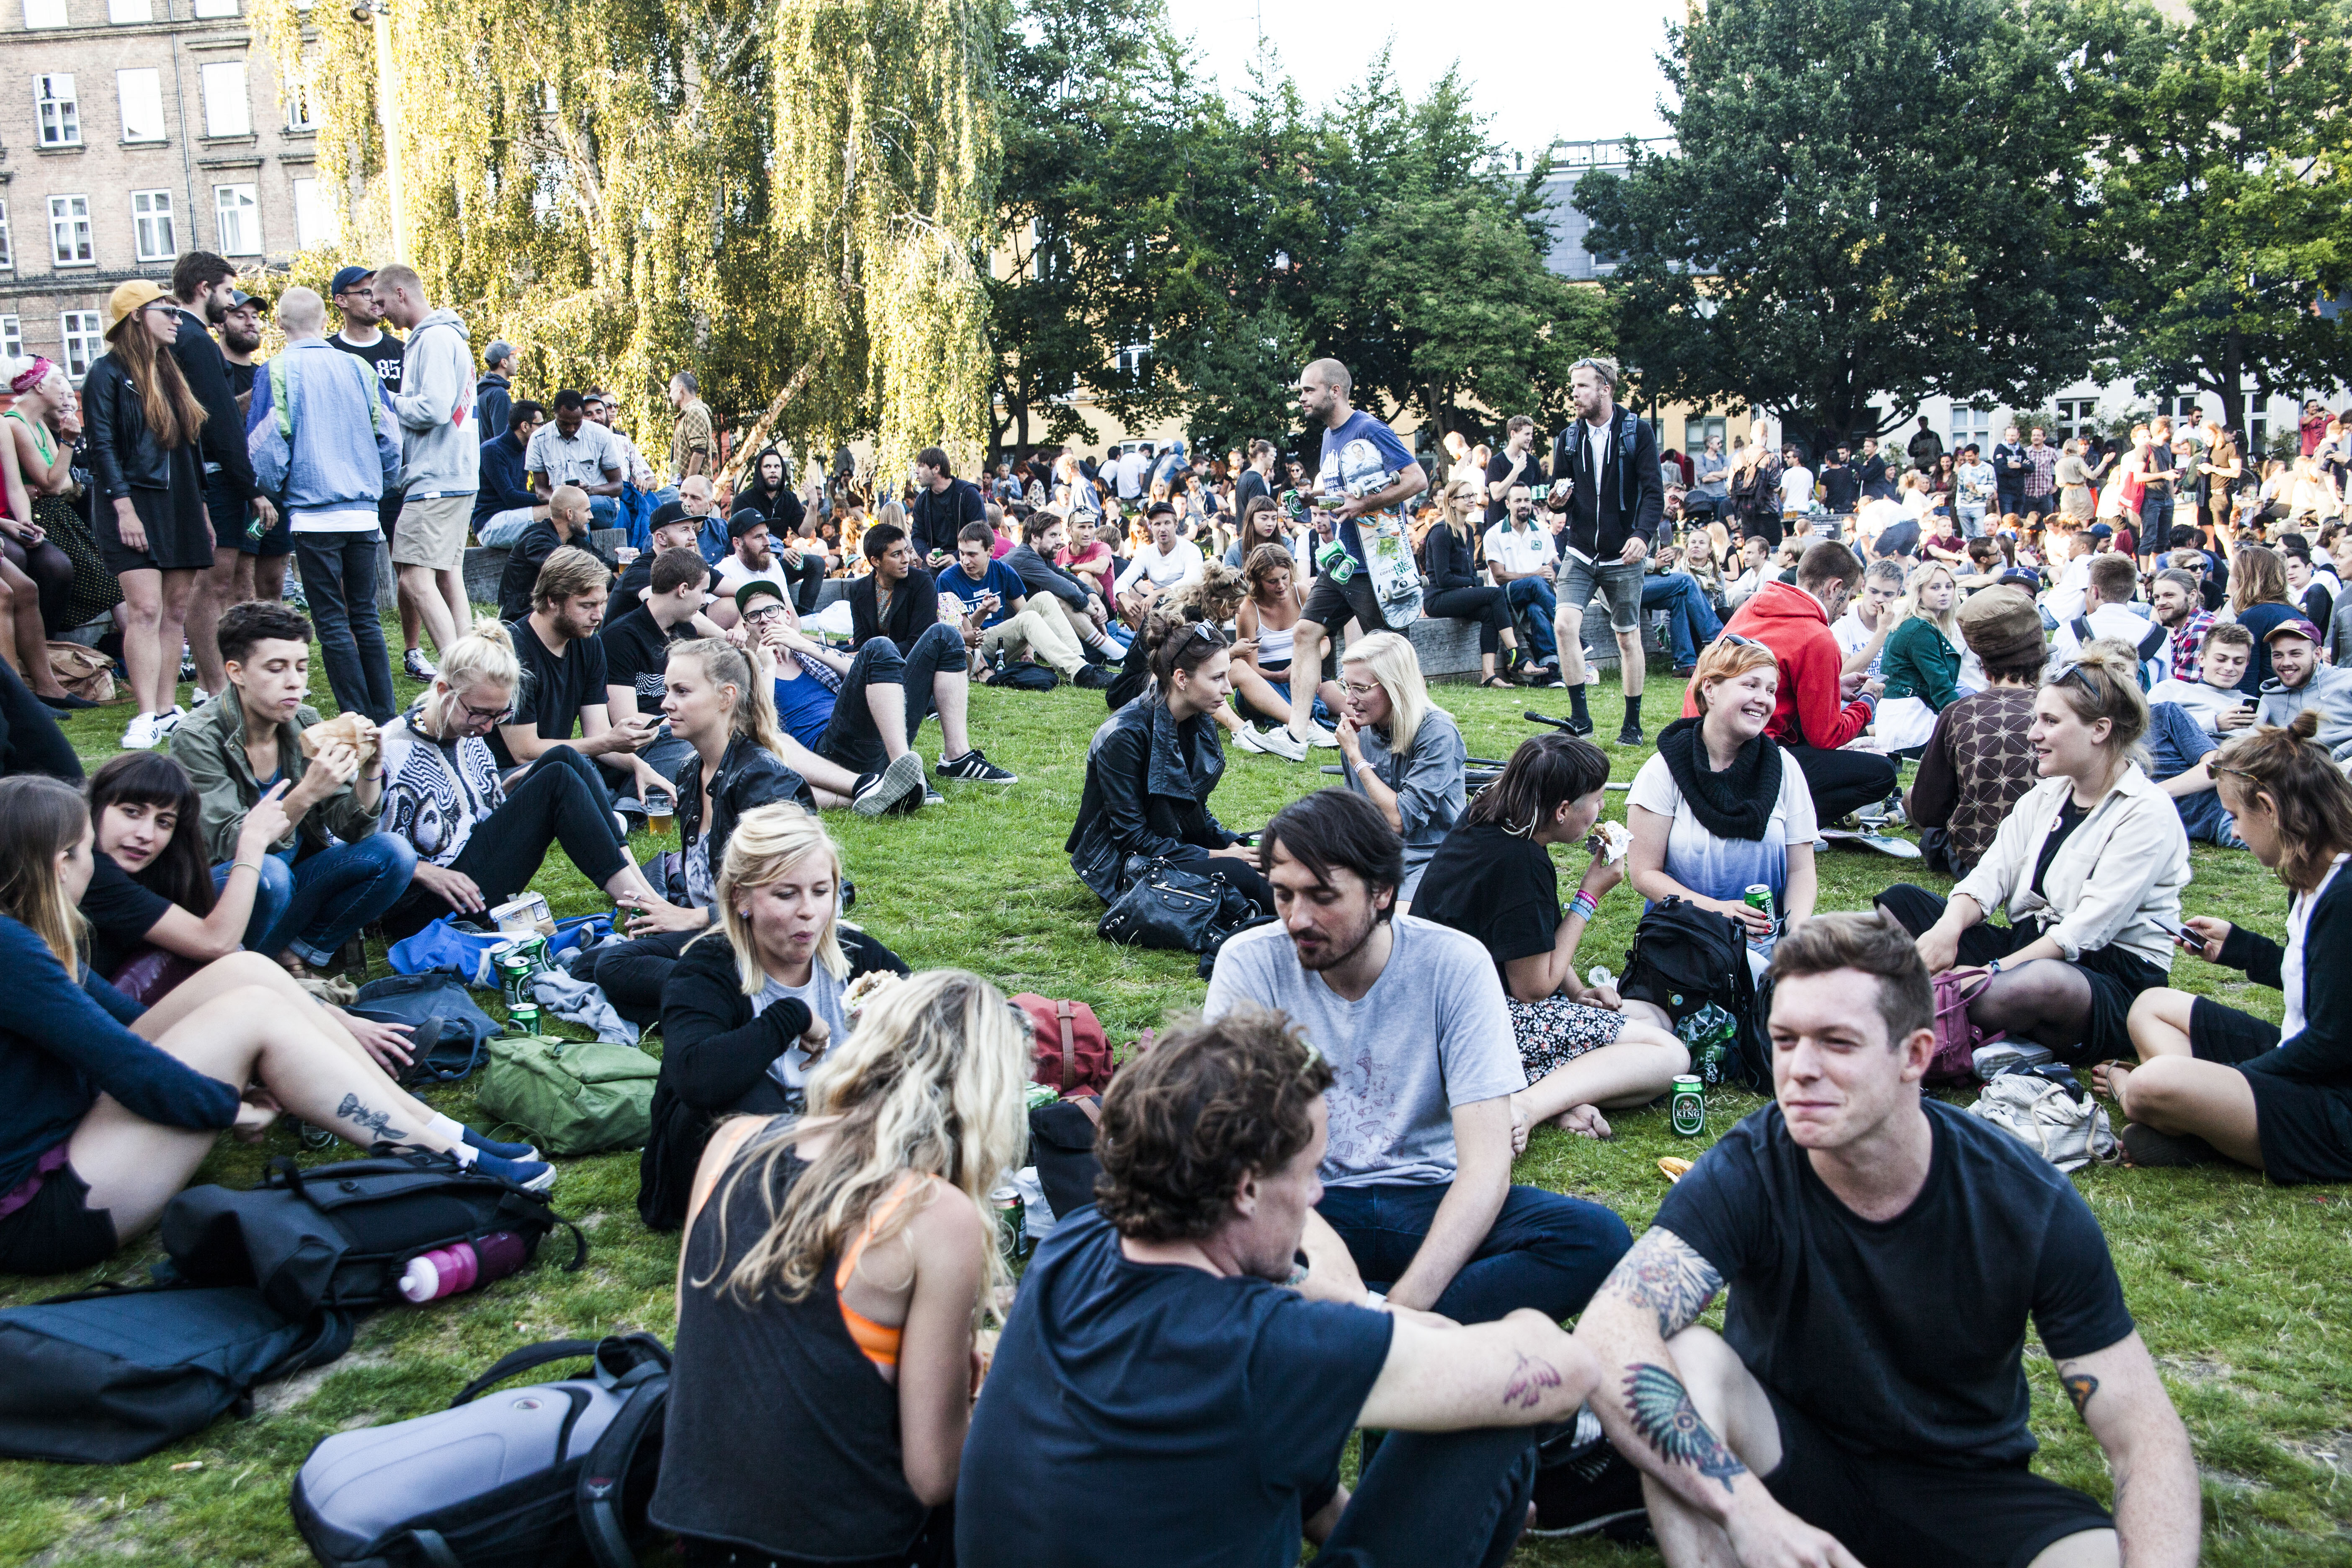 BlockParty_strømcph2015_HelenaLundquist_3